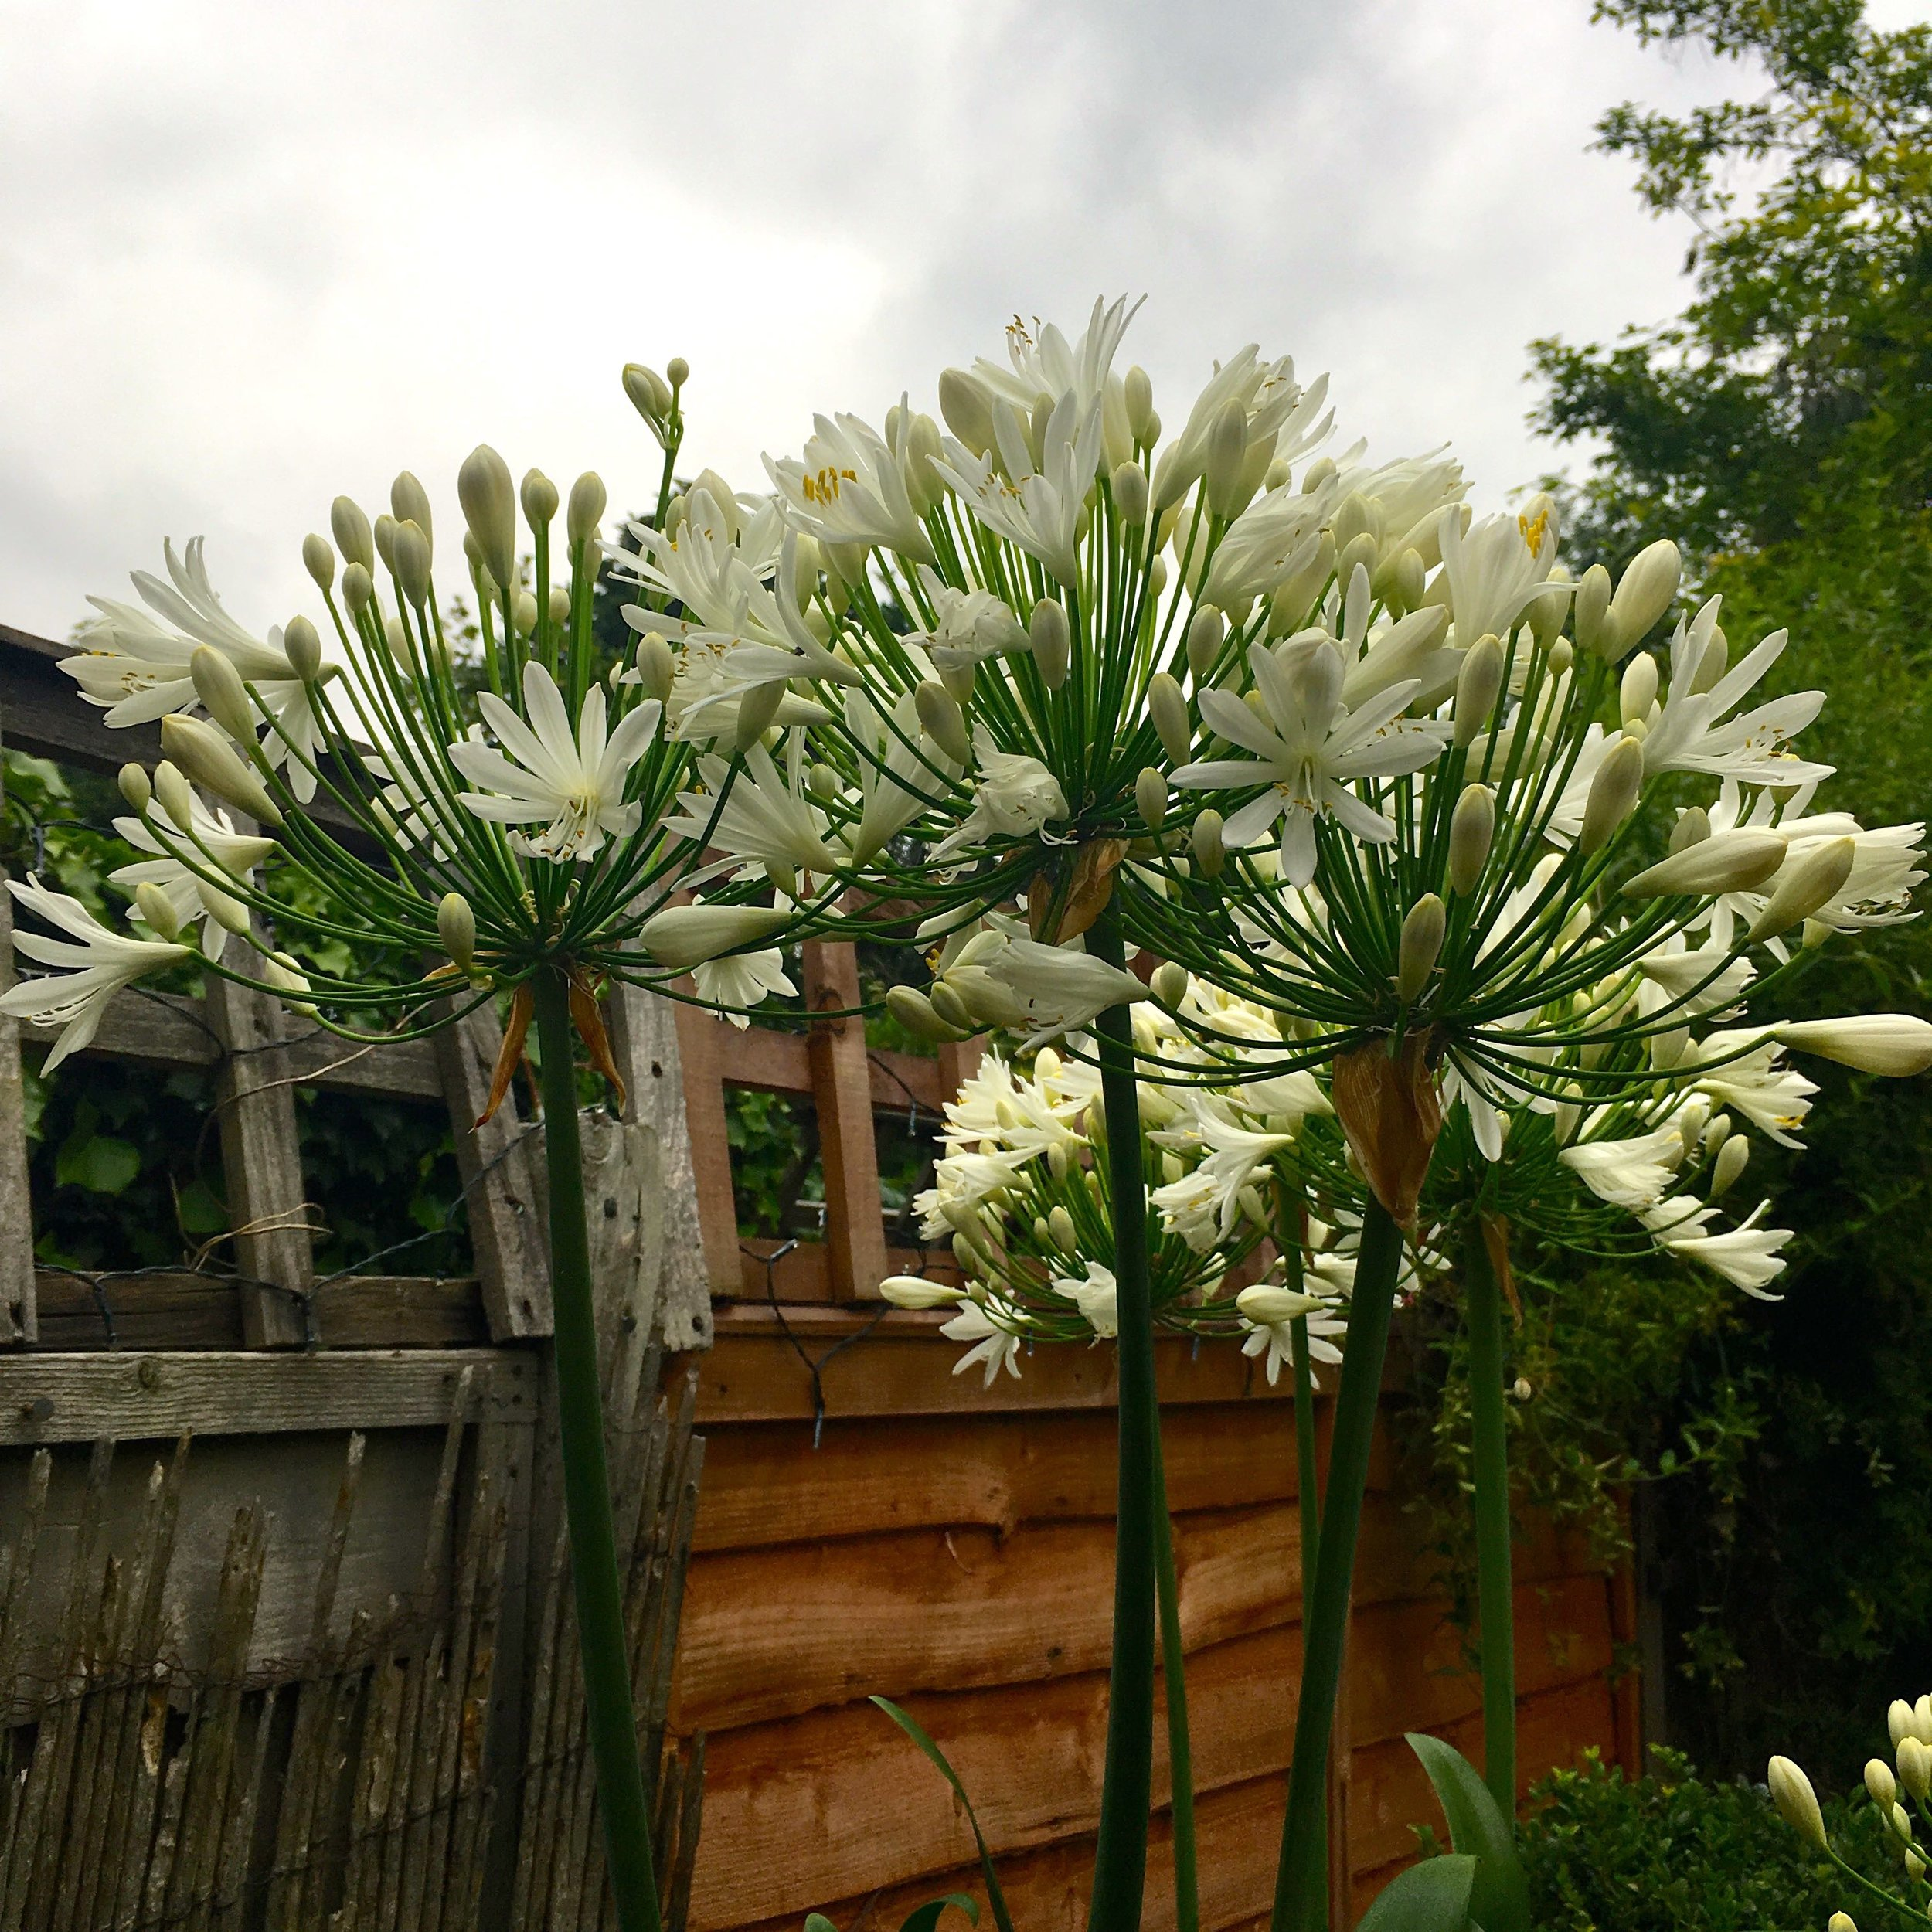 agapanthus with the flowers starting to open